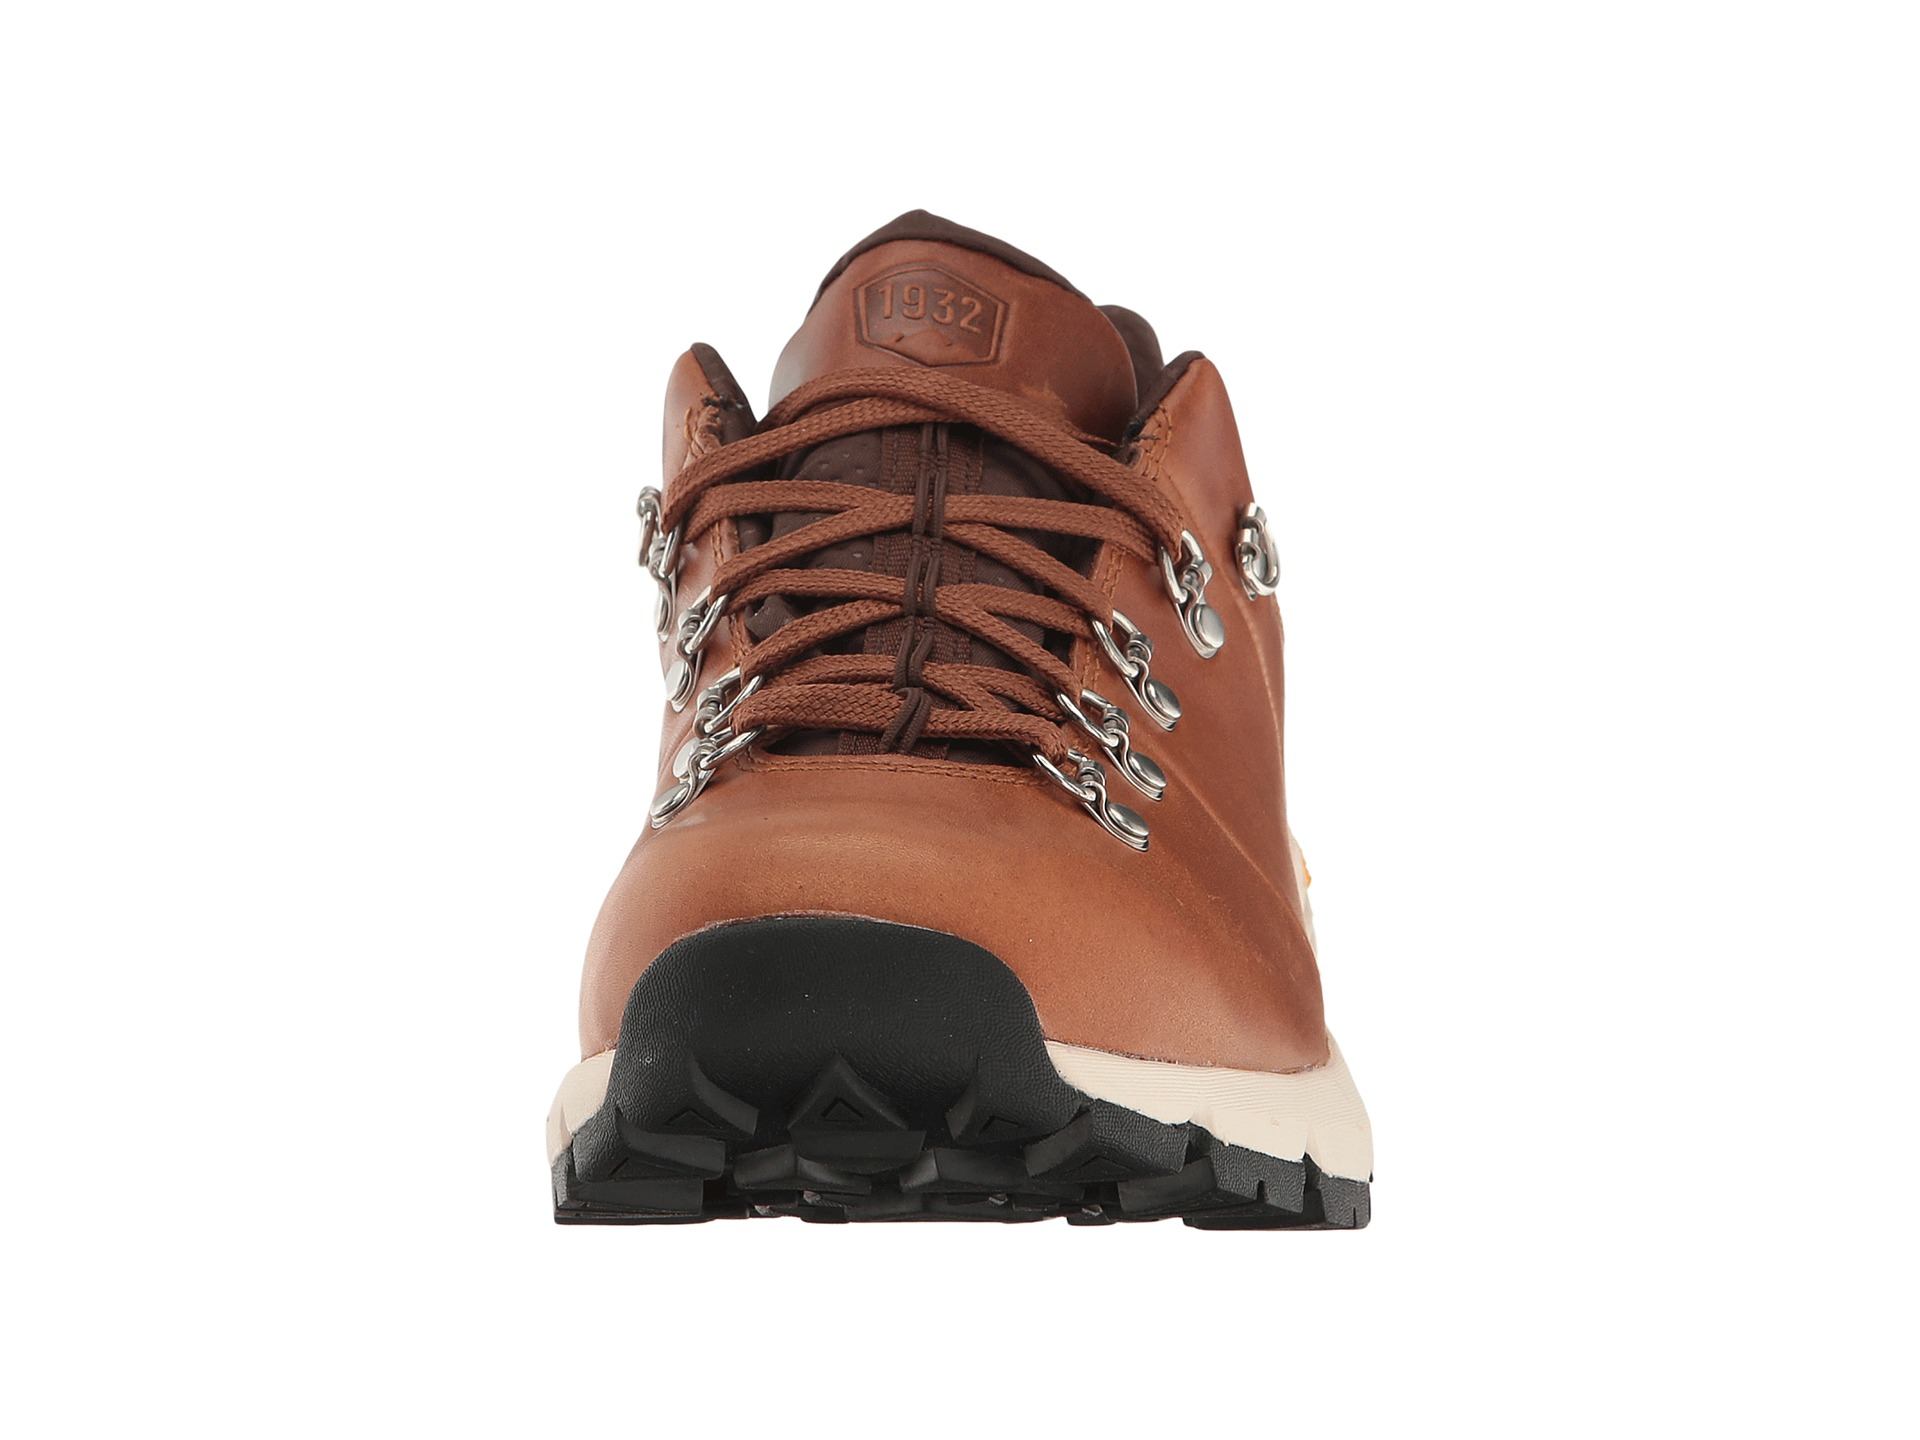 Find a gift for everyone on your list and shop Danner Boots at DICK'S Sporting Goods. Use gift cards on Danner Boots at incredibly low prices with our Best Price Guarantee!